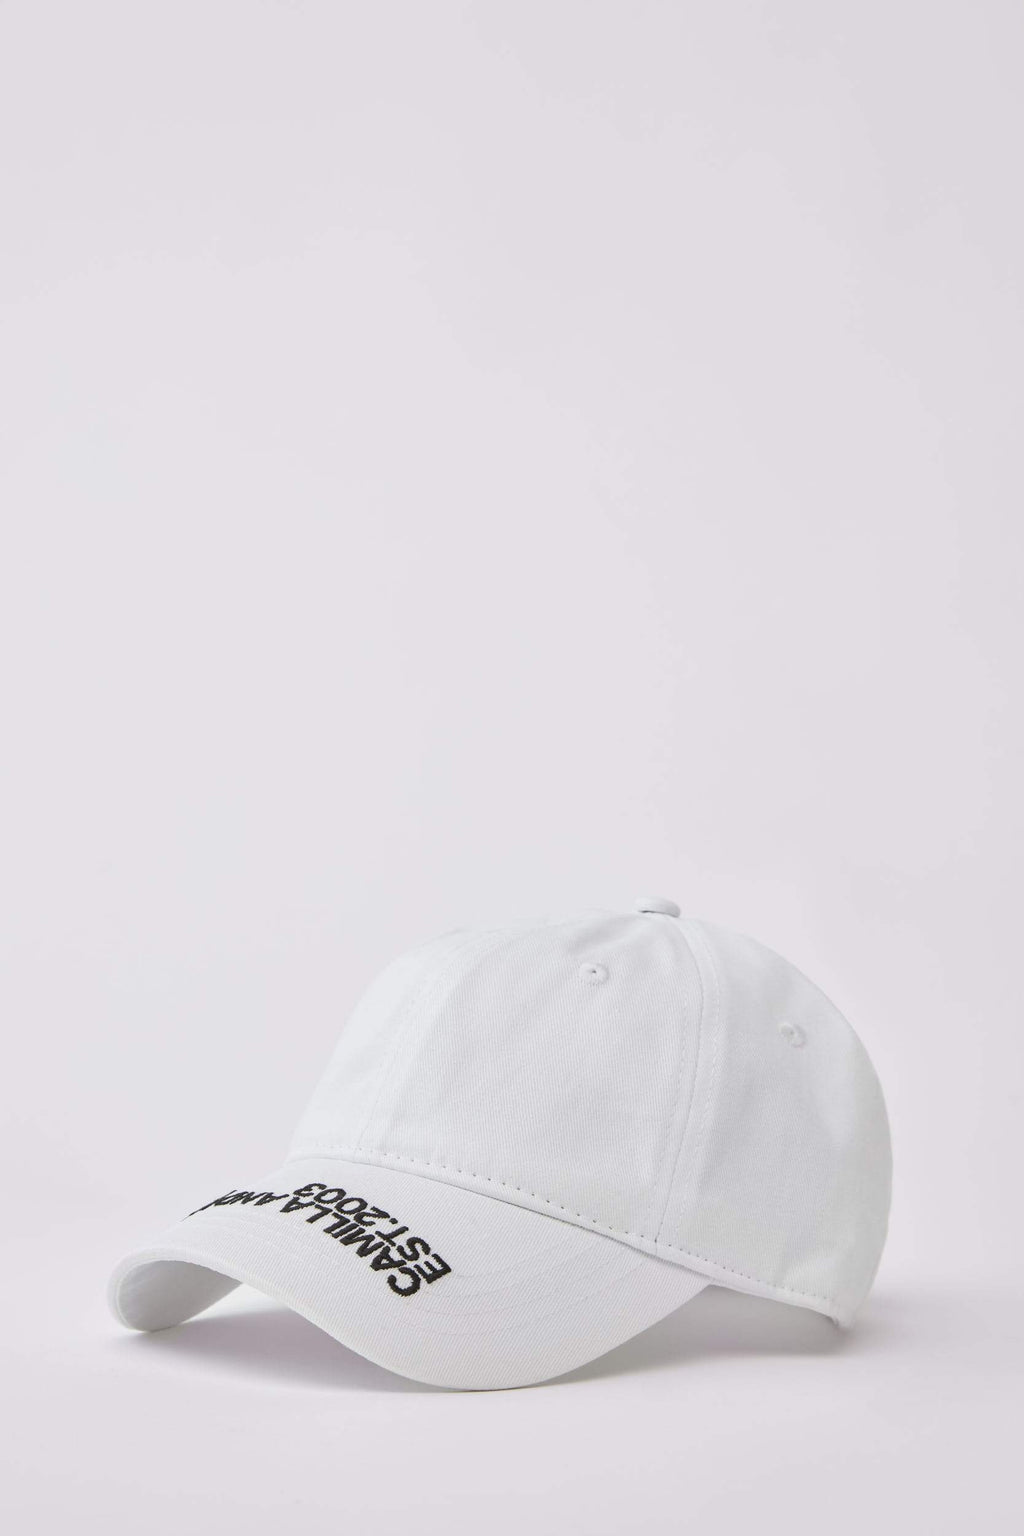 Camilla And Marc / Colorado Cap / White w Black